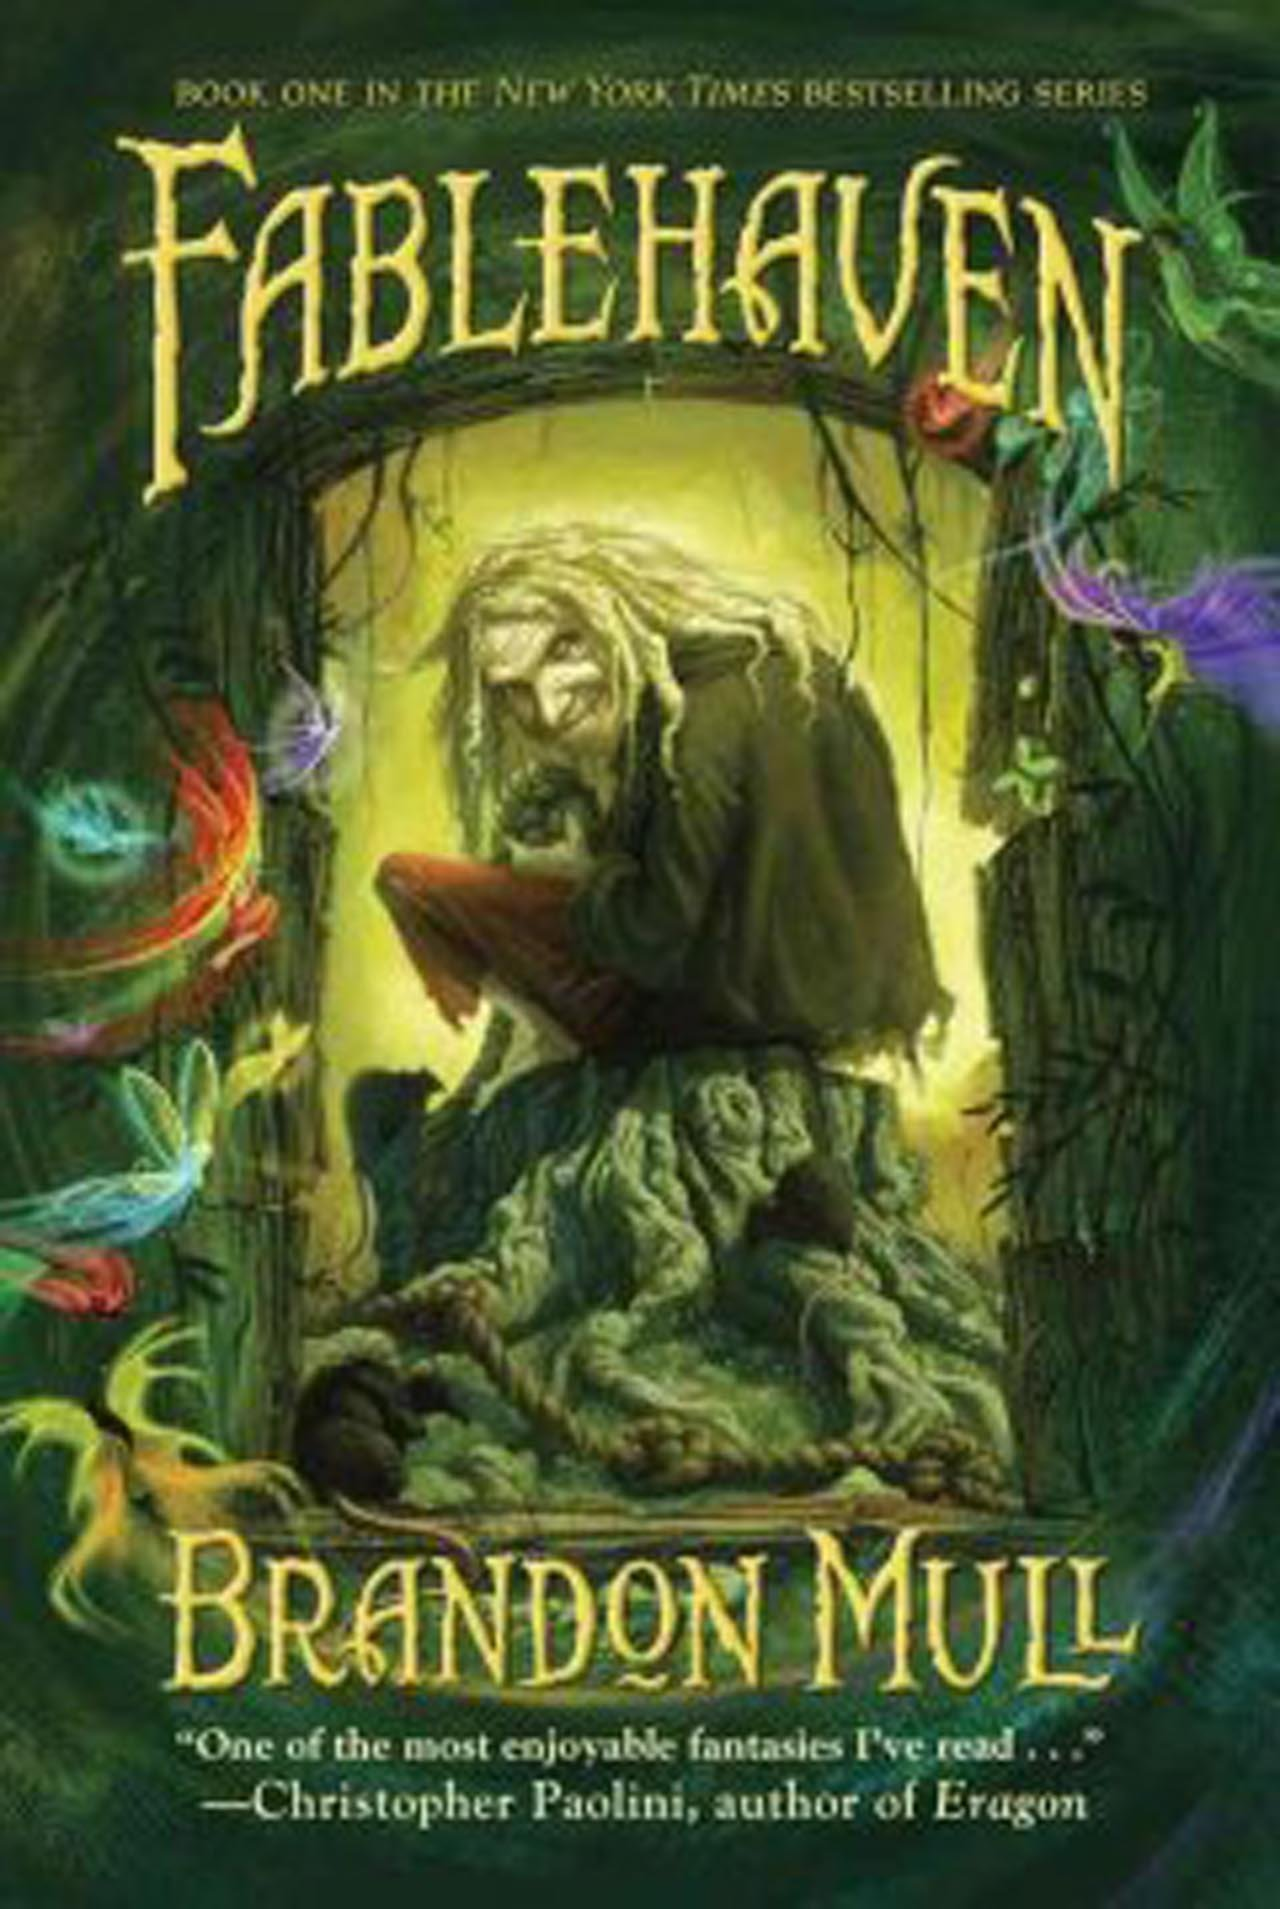 Image result for fablehaven book pic